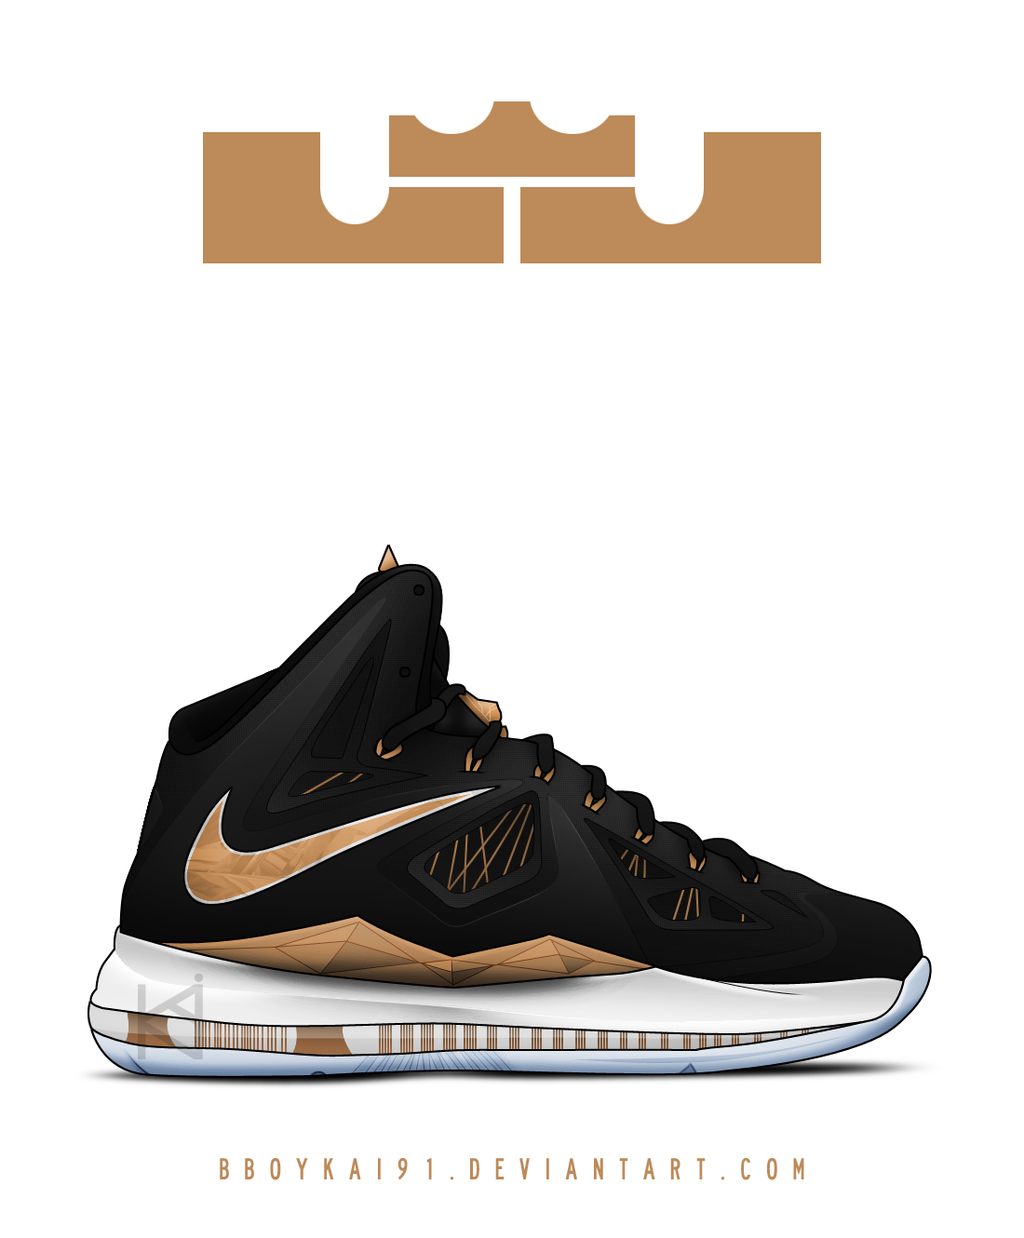 Nike Lebron X+ 'Rose Gold' by BBoyKai91